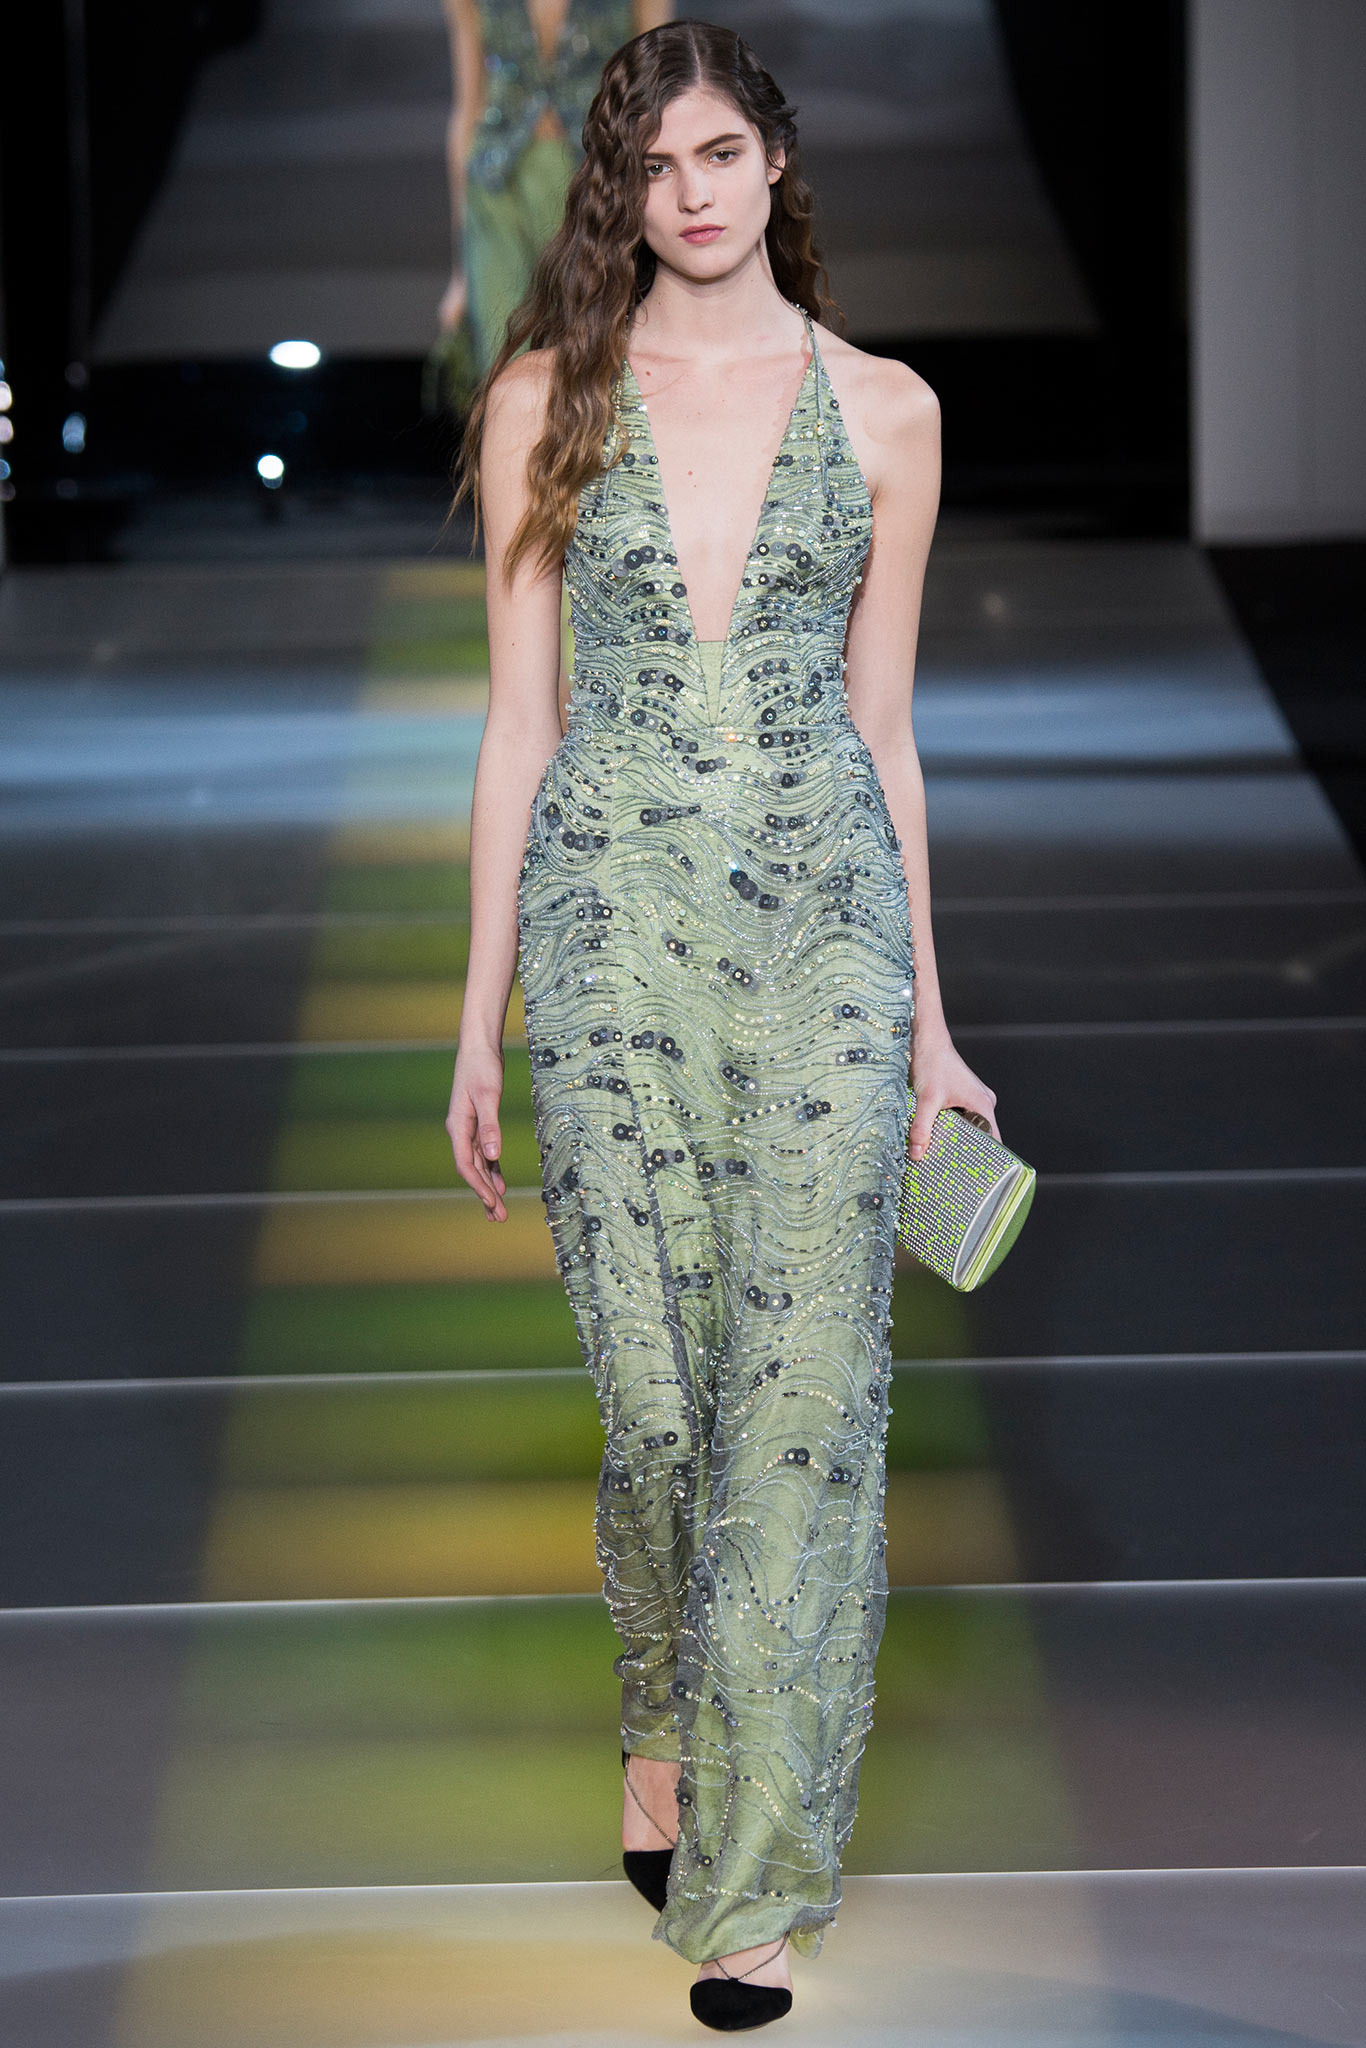 Milan Fashion Week Fall 2014 RTW: Giorgio Armani – Ani & Izzy